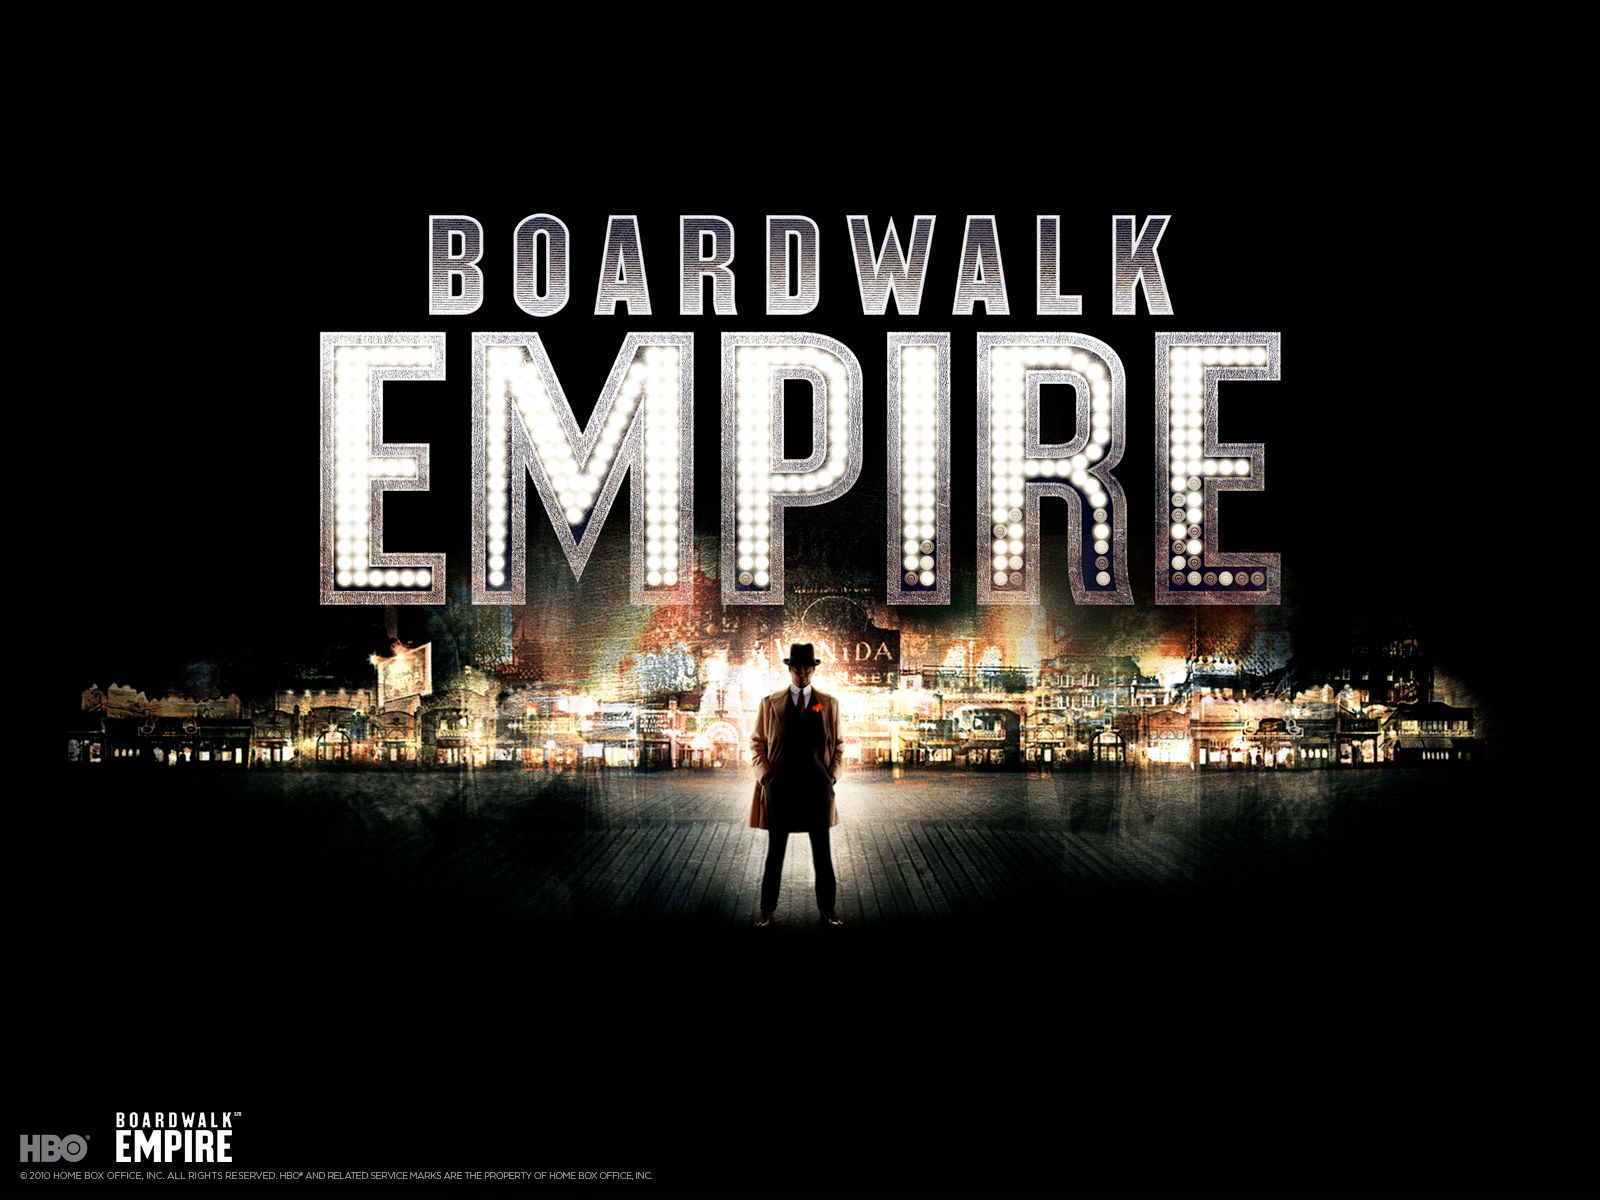 Boardwalk Empire - Season 1 (2010)Boardwalk Empire